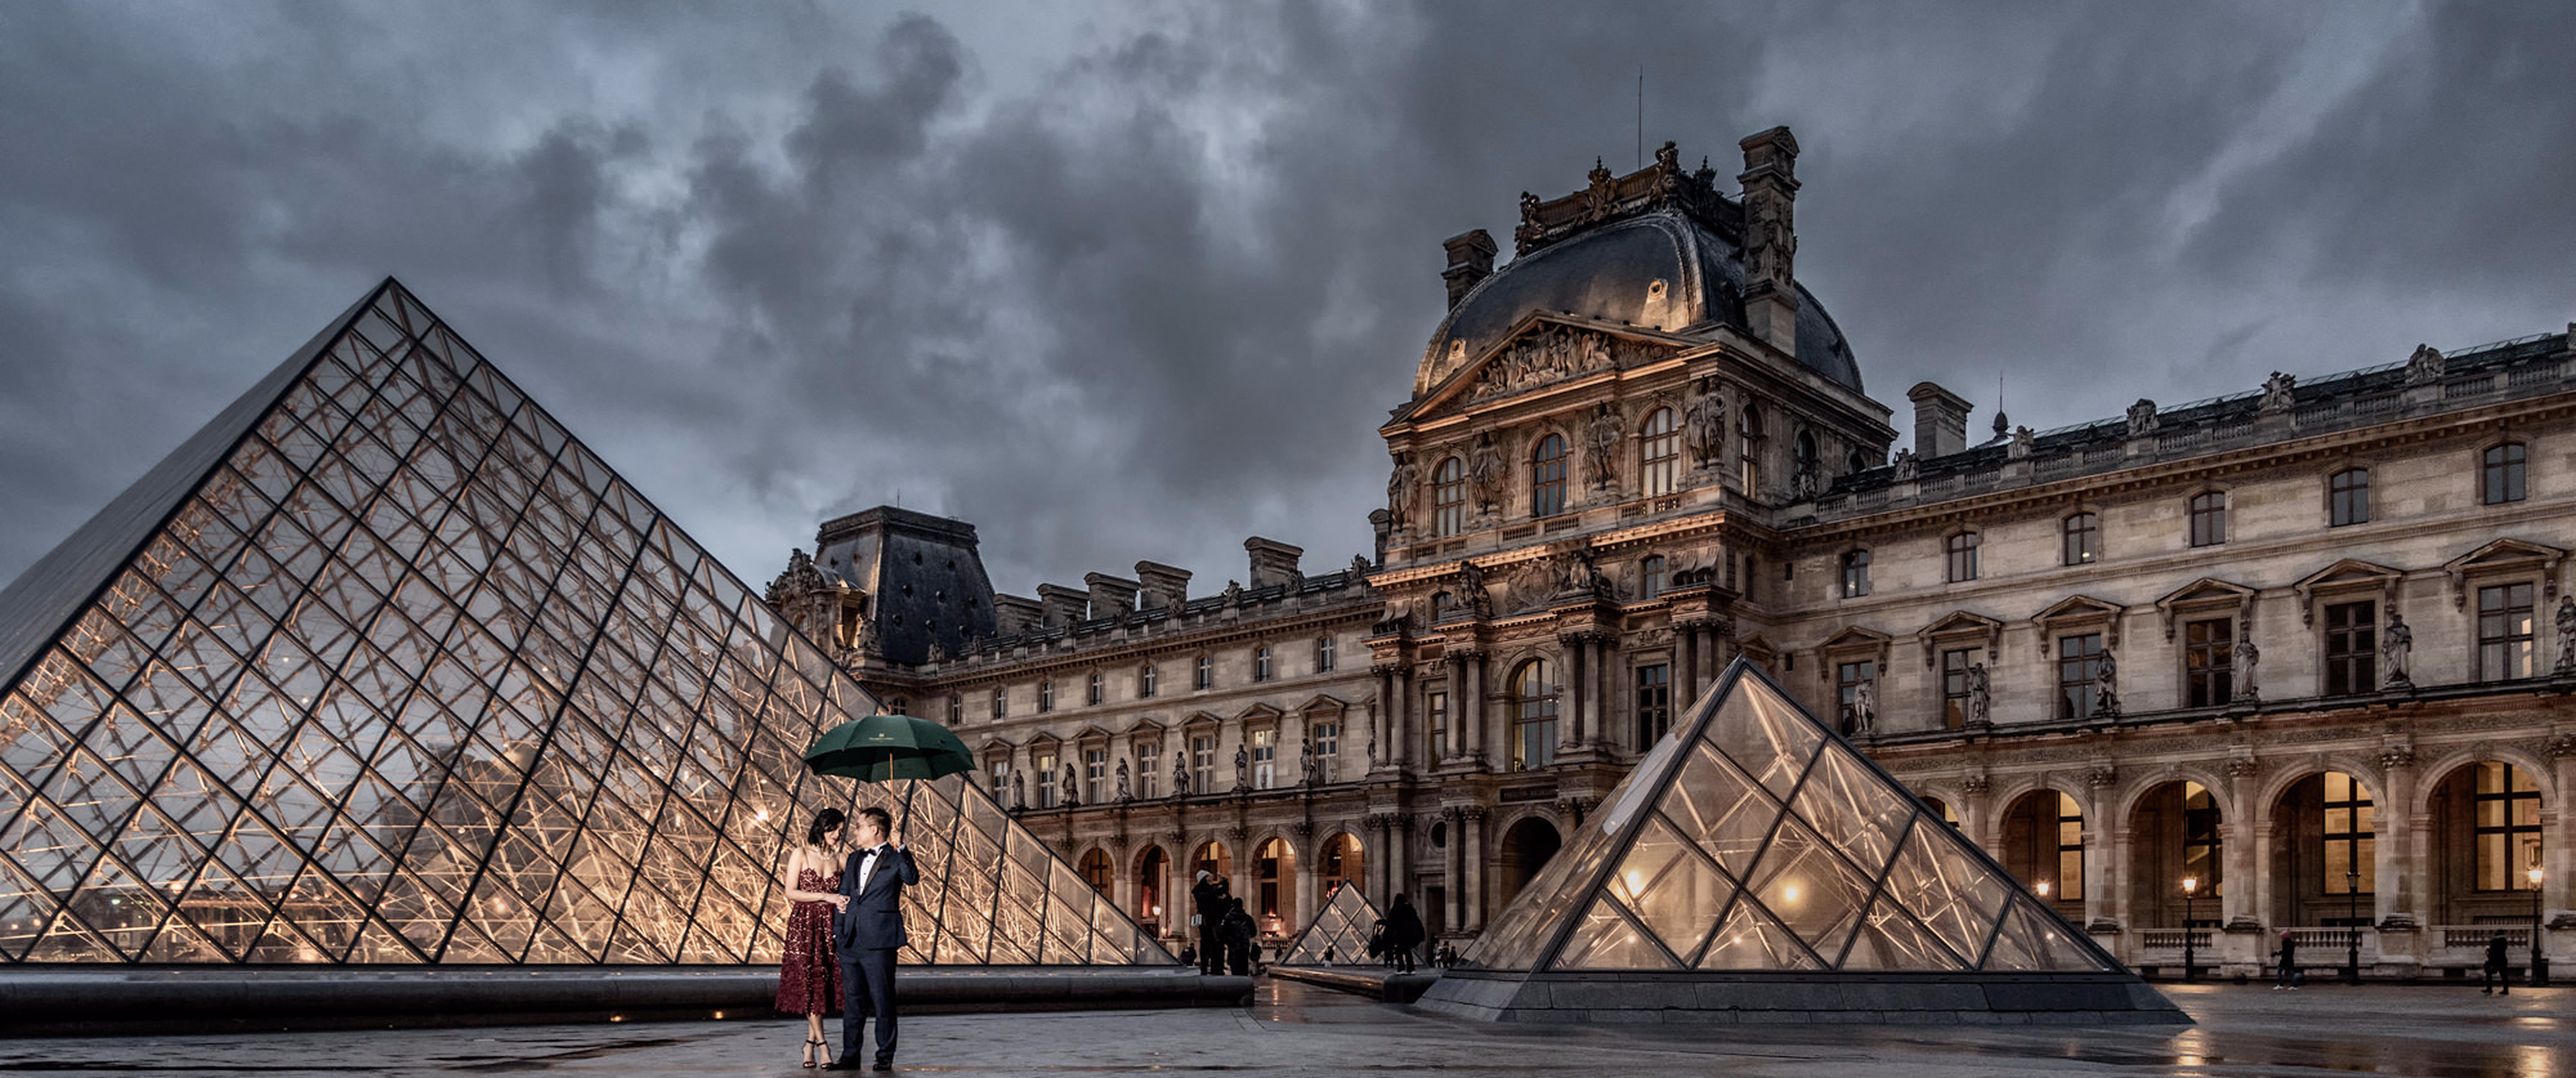 Download Louvre Museum Paris Pre Wedding for UWQHD Wallpaper 3440x1440